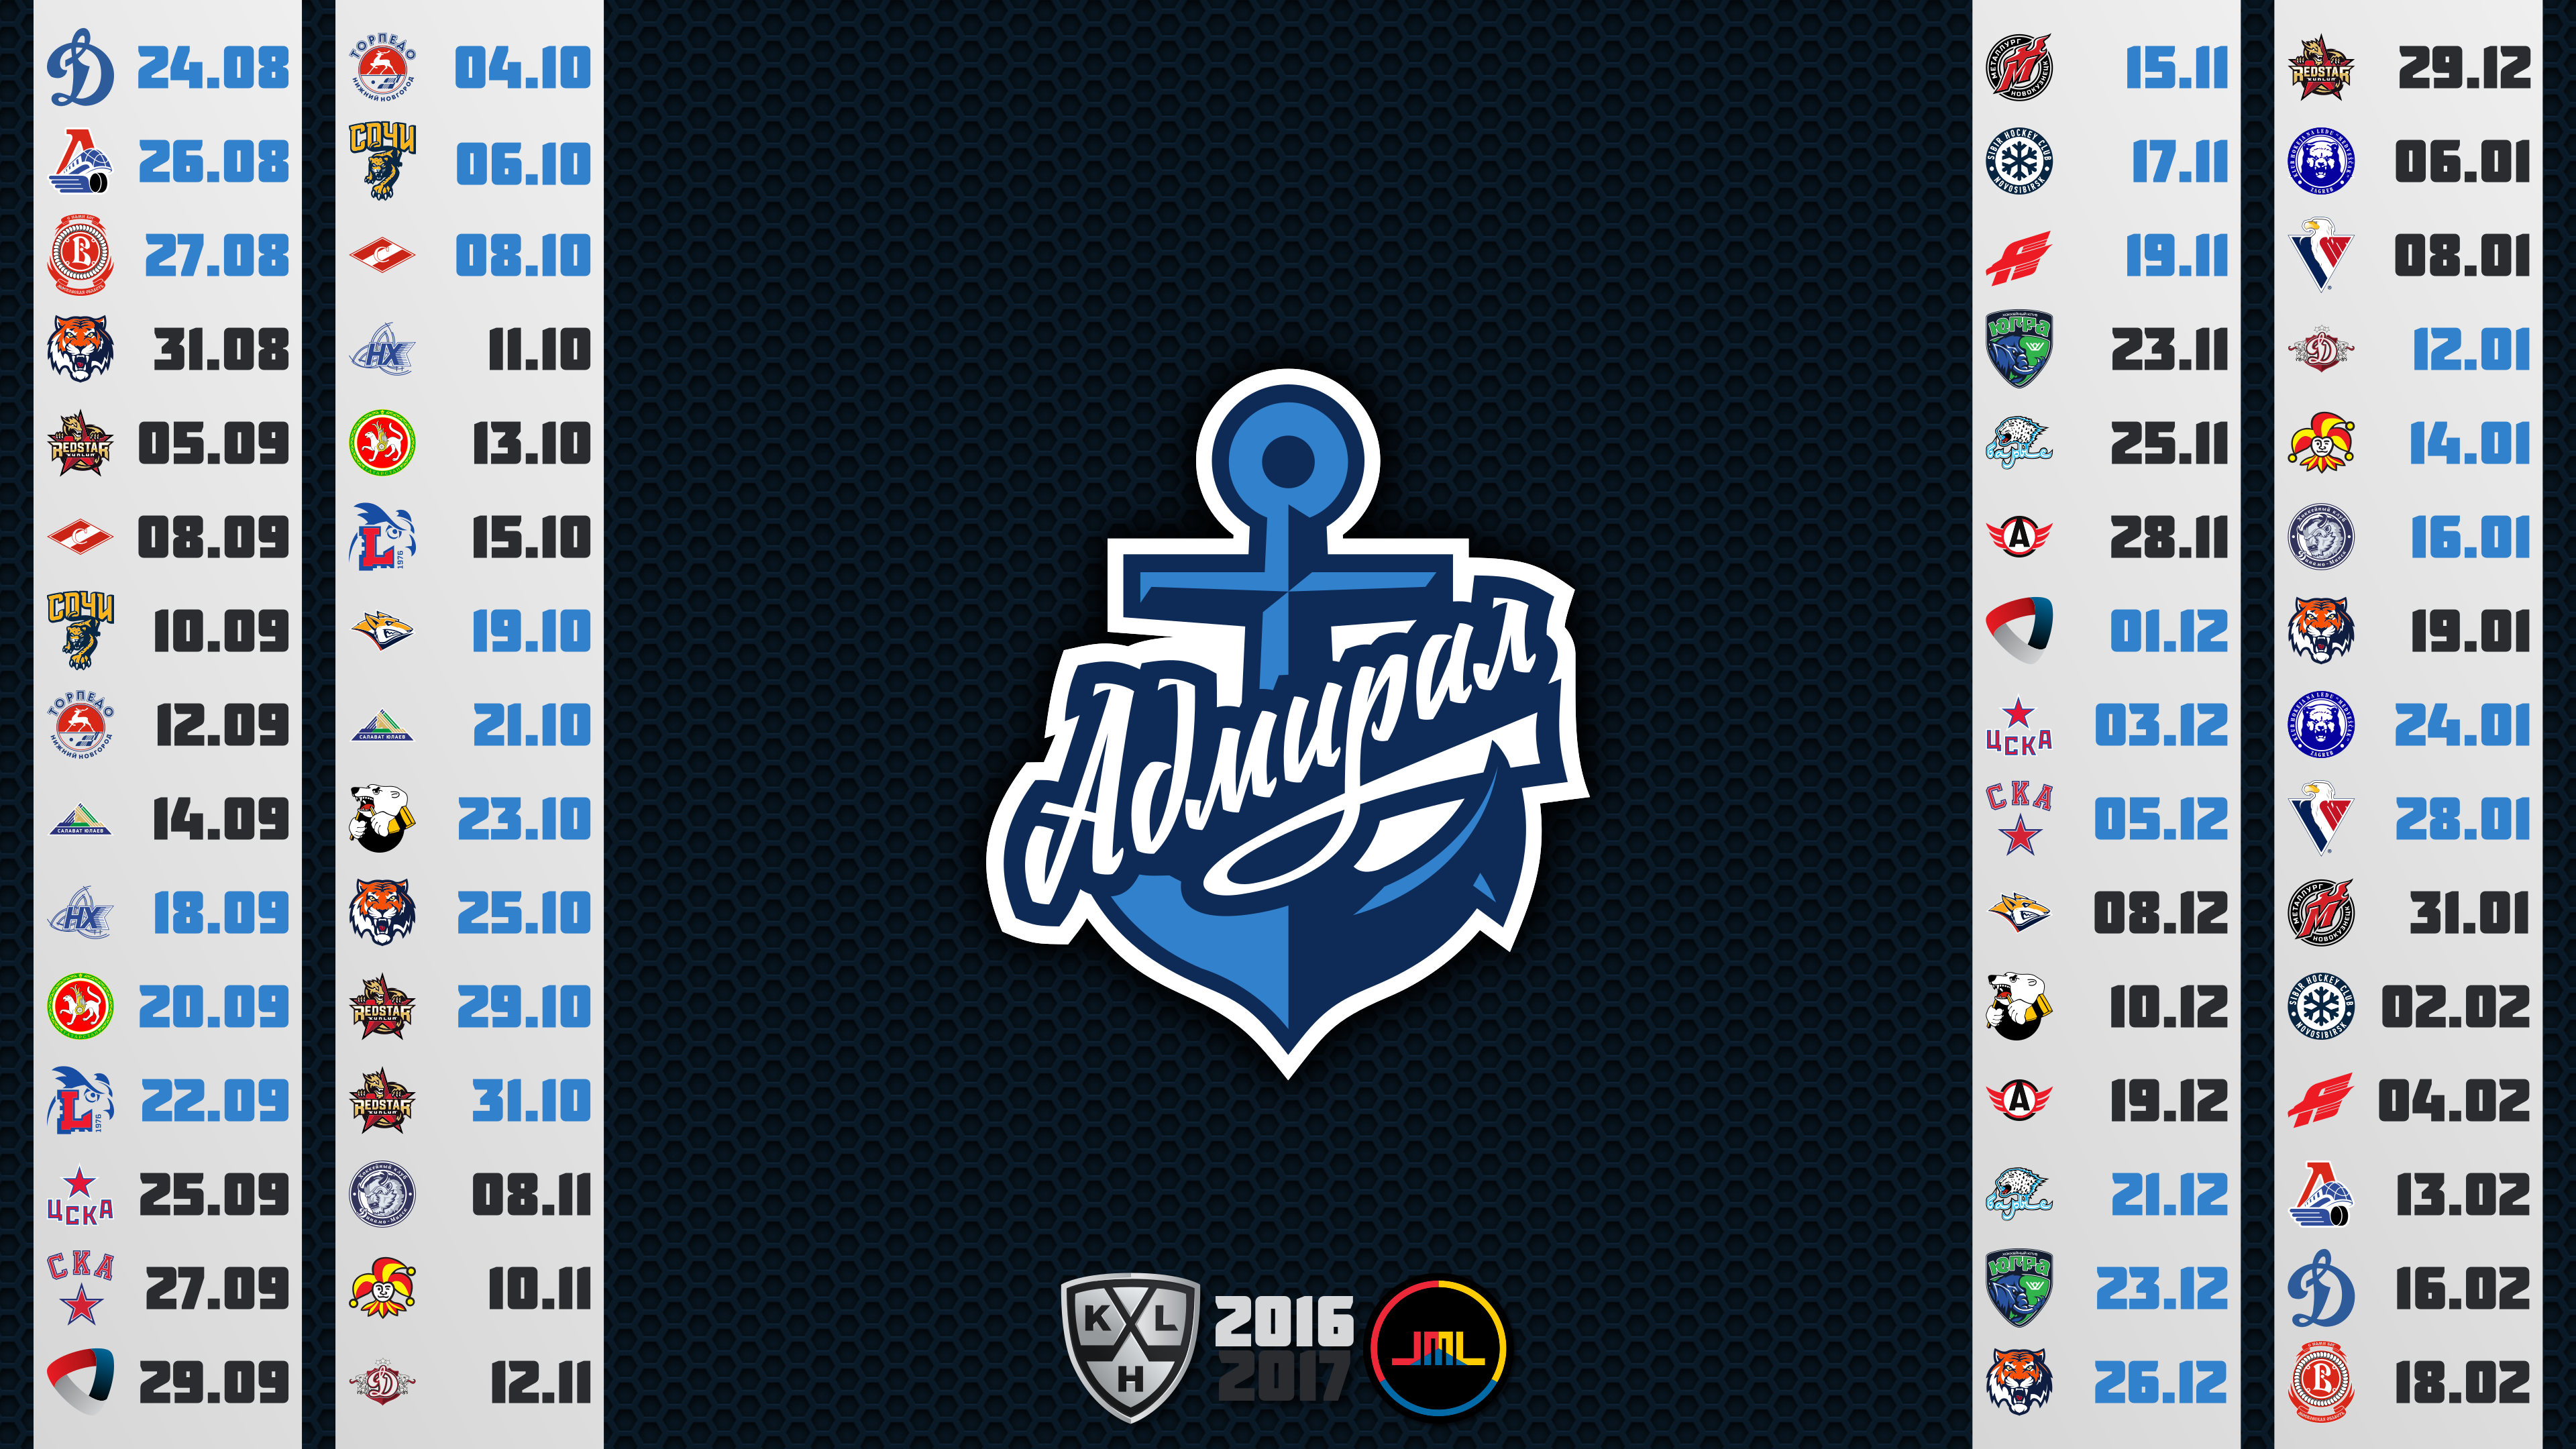 2016 2017 KHL Schedule Wallpapers are complete   Album on Imgur 3840x2160